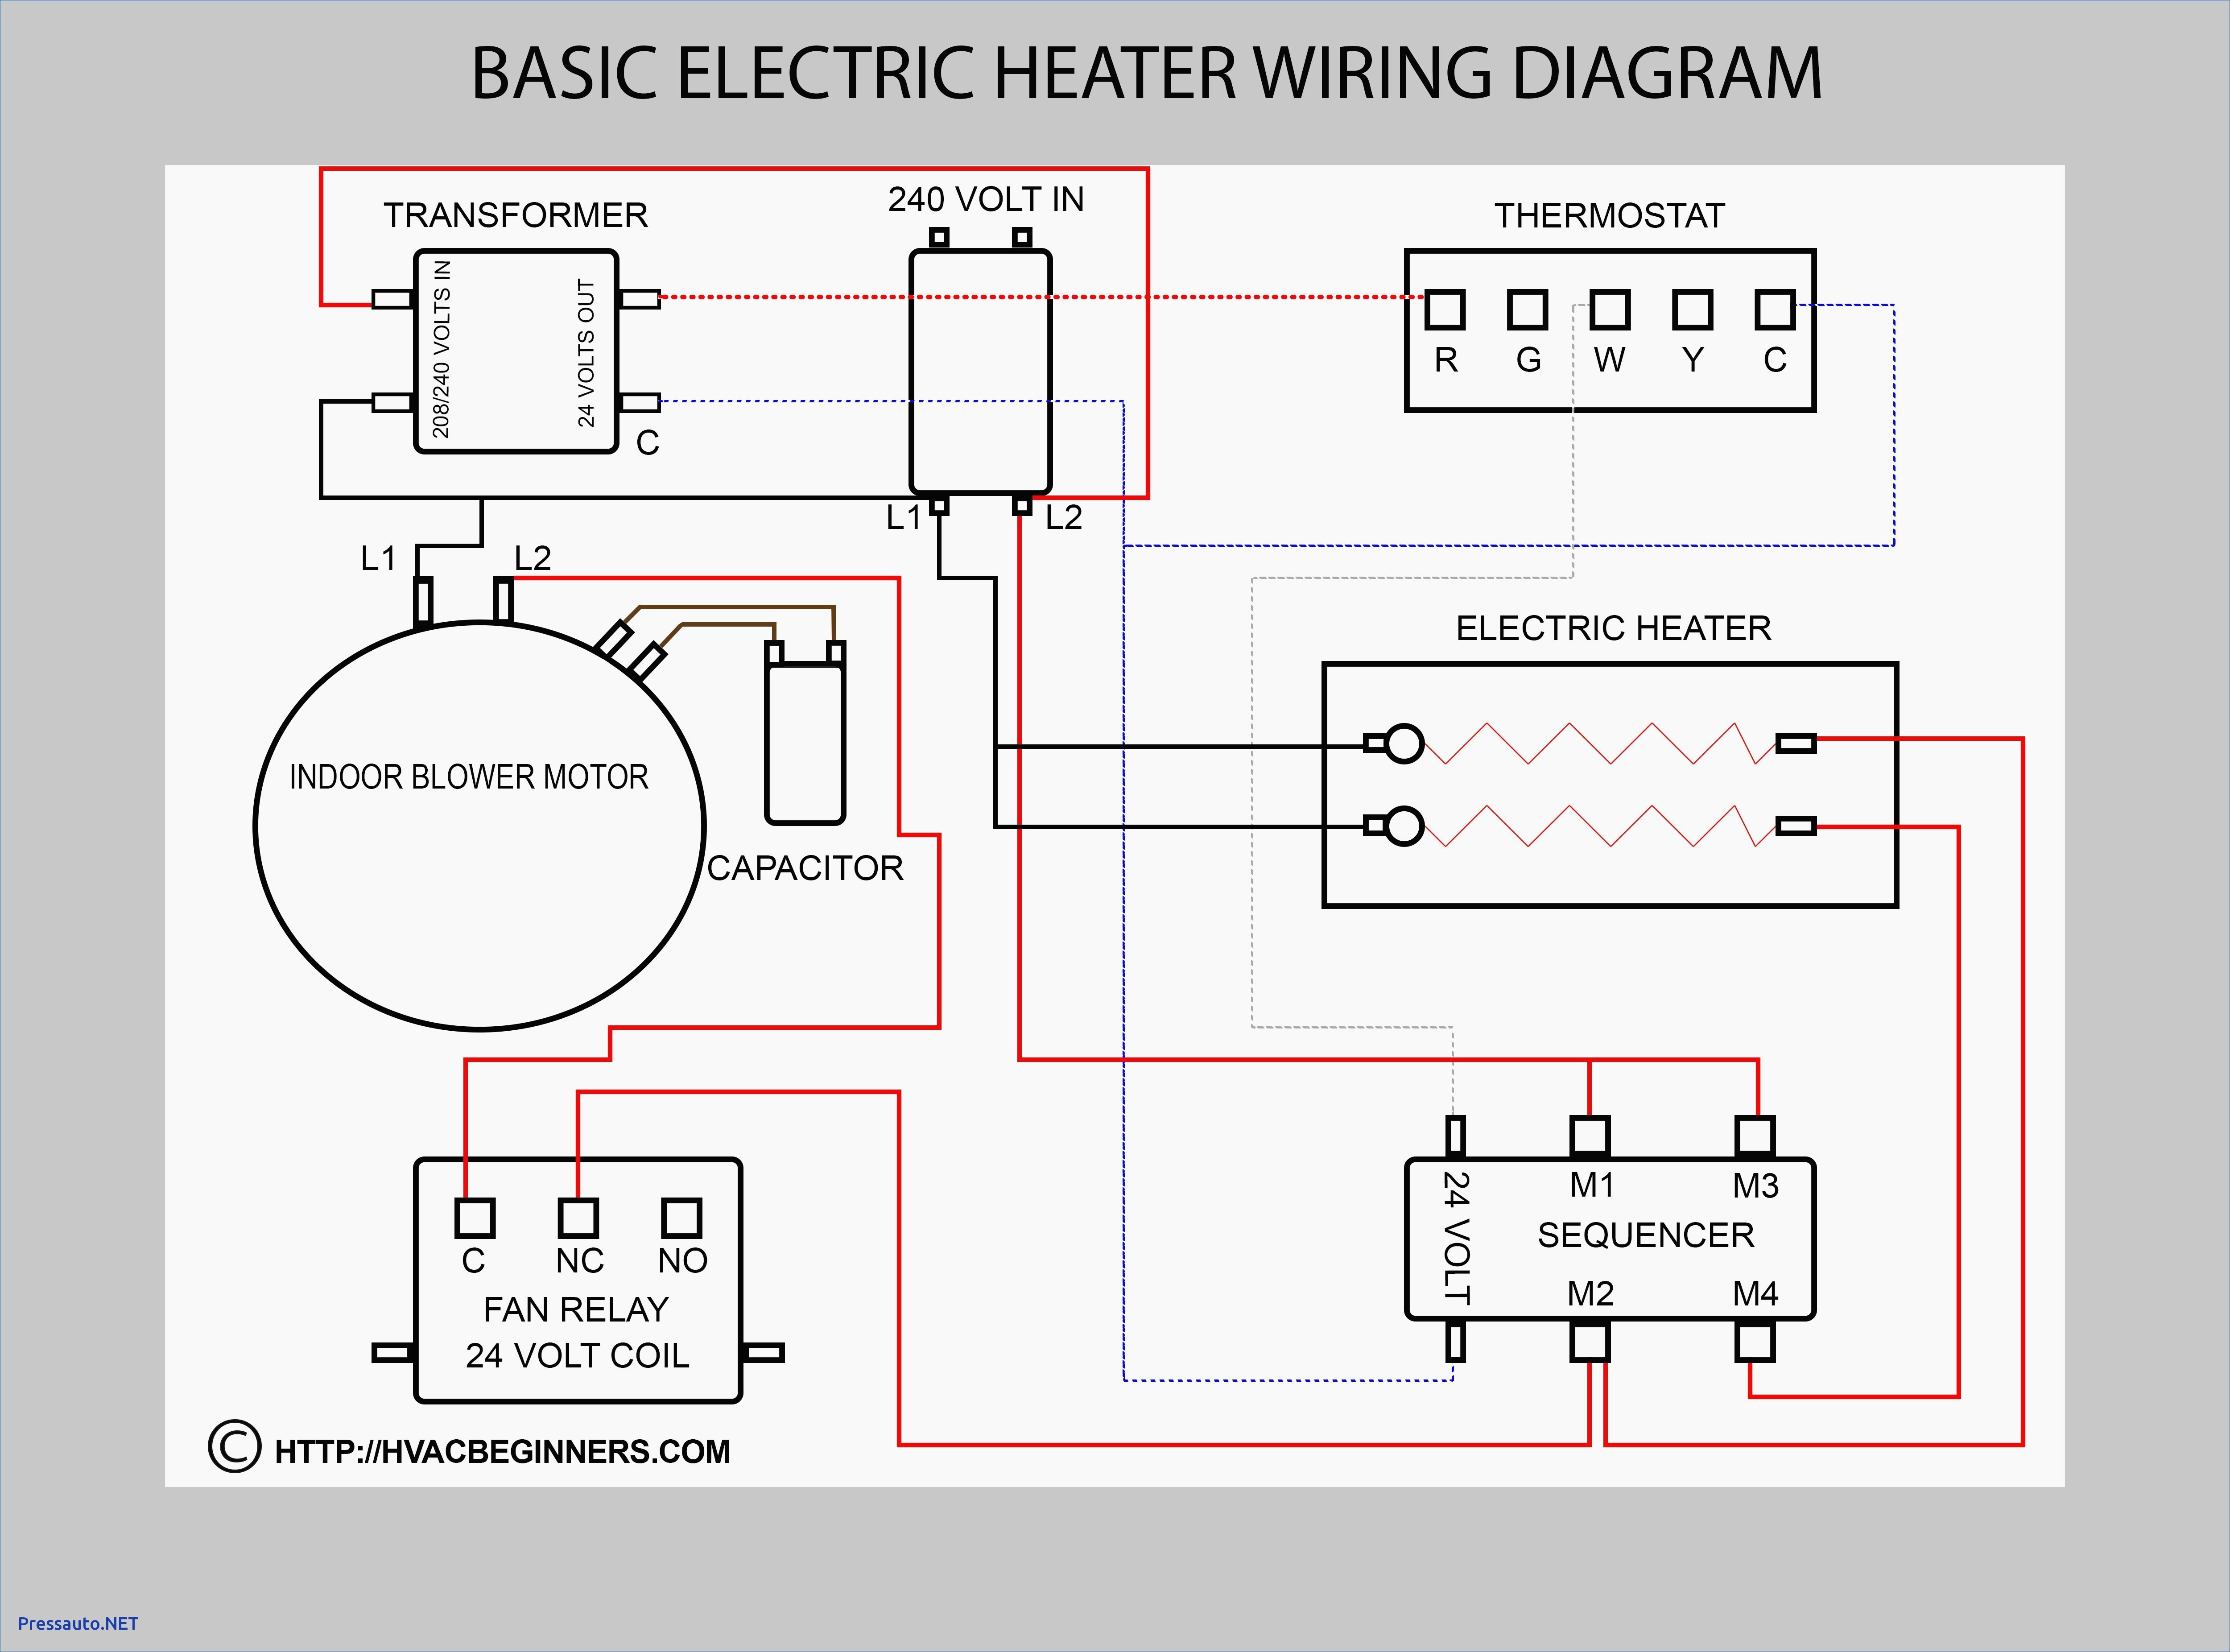 marine electrical wiring diagram Download-house thermostat wiring diagram Collection Wiring Diagrams For Central Heating Save Wiring Diagram For Heating DOWNLOAD Wiring Diagram 15-n